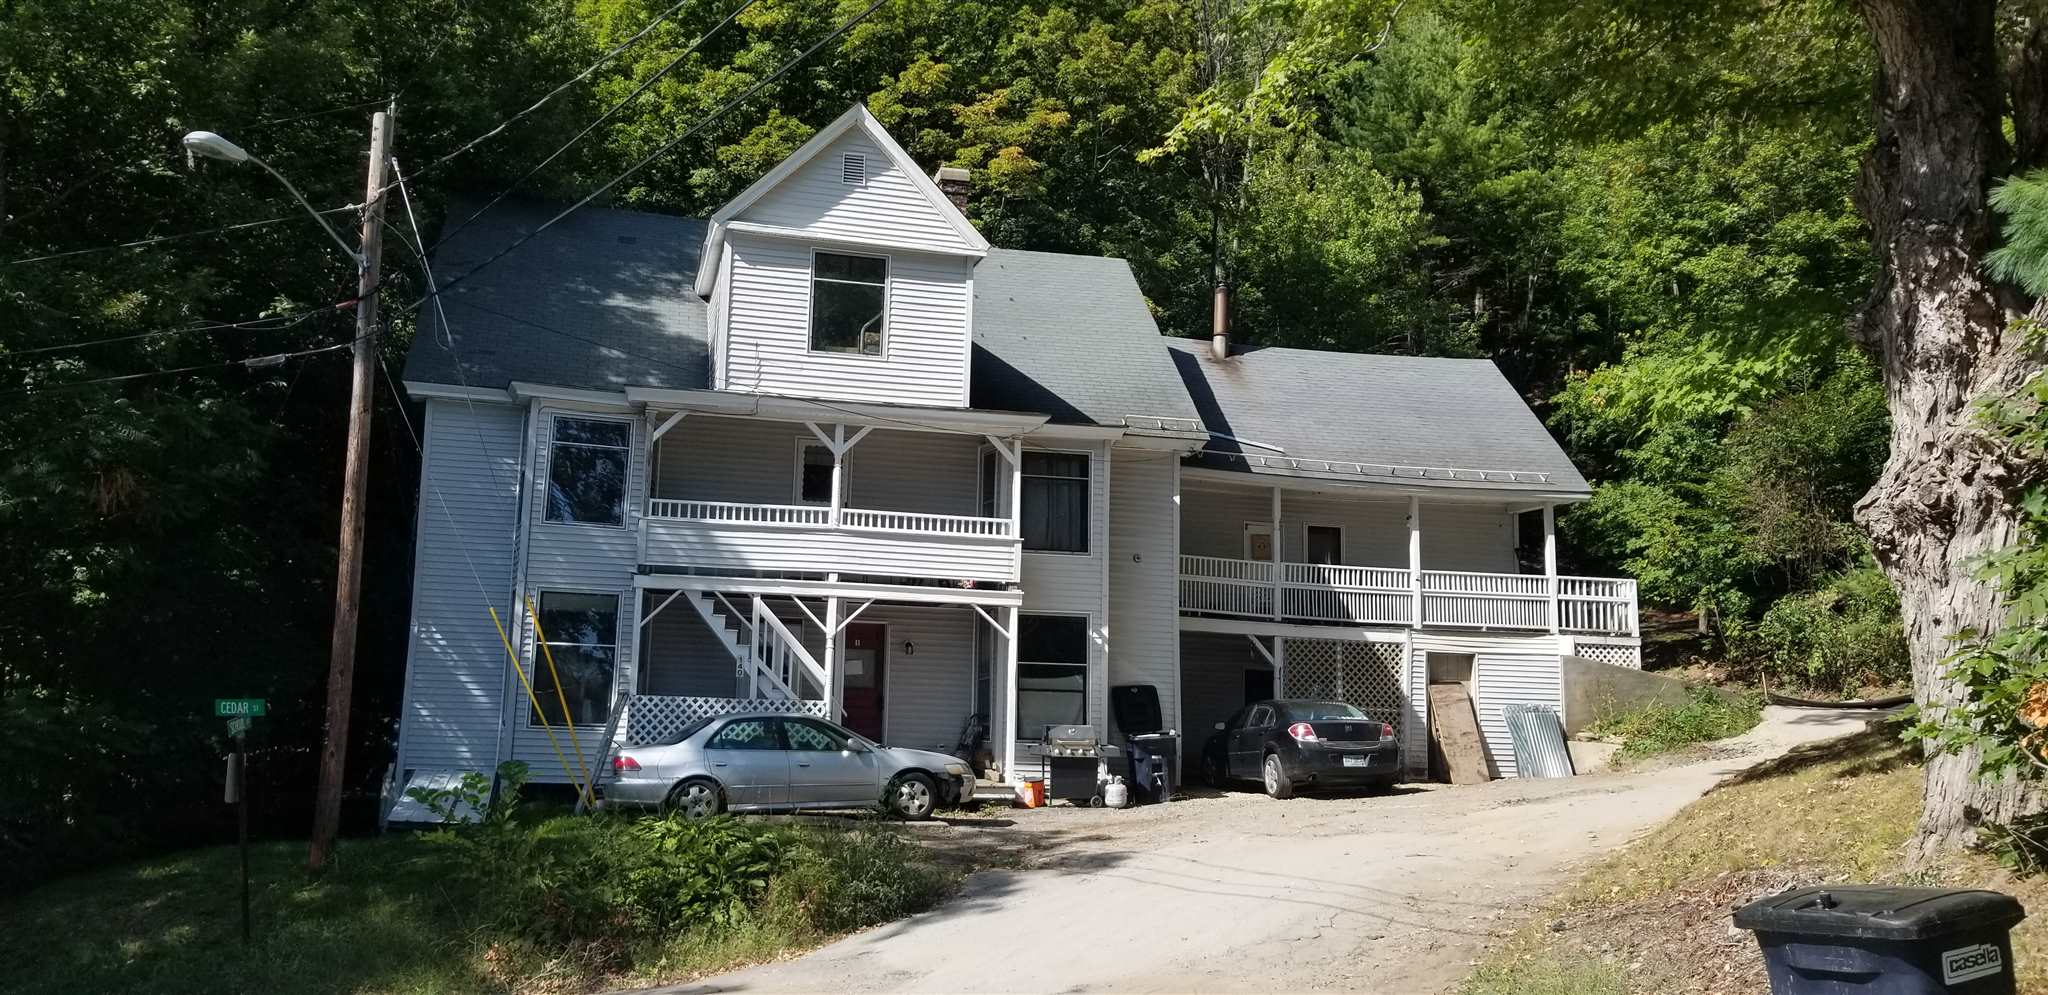 MLS 4829345: 140 School Street, Bristol NH